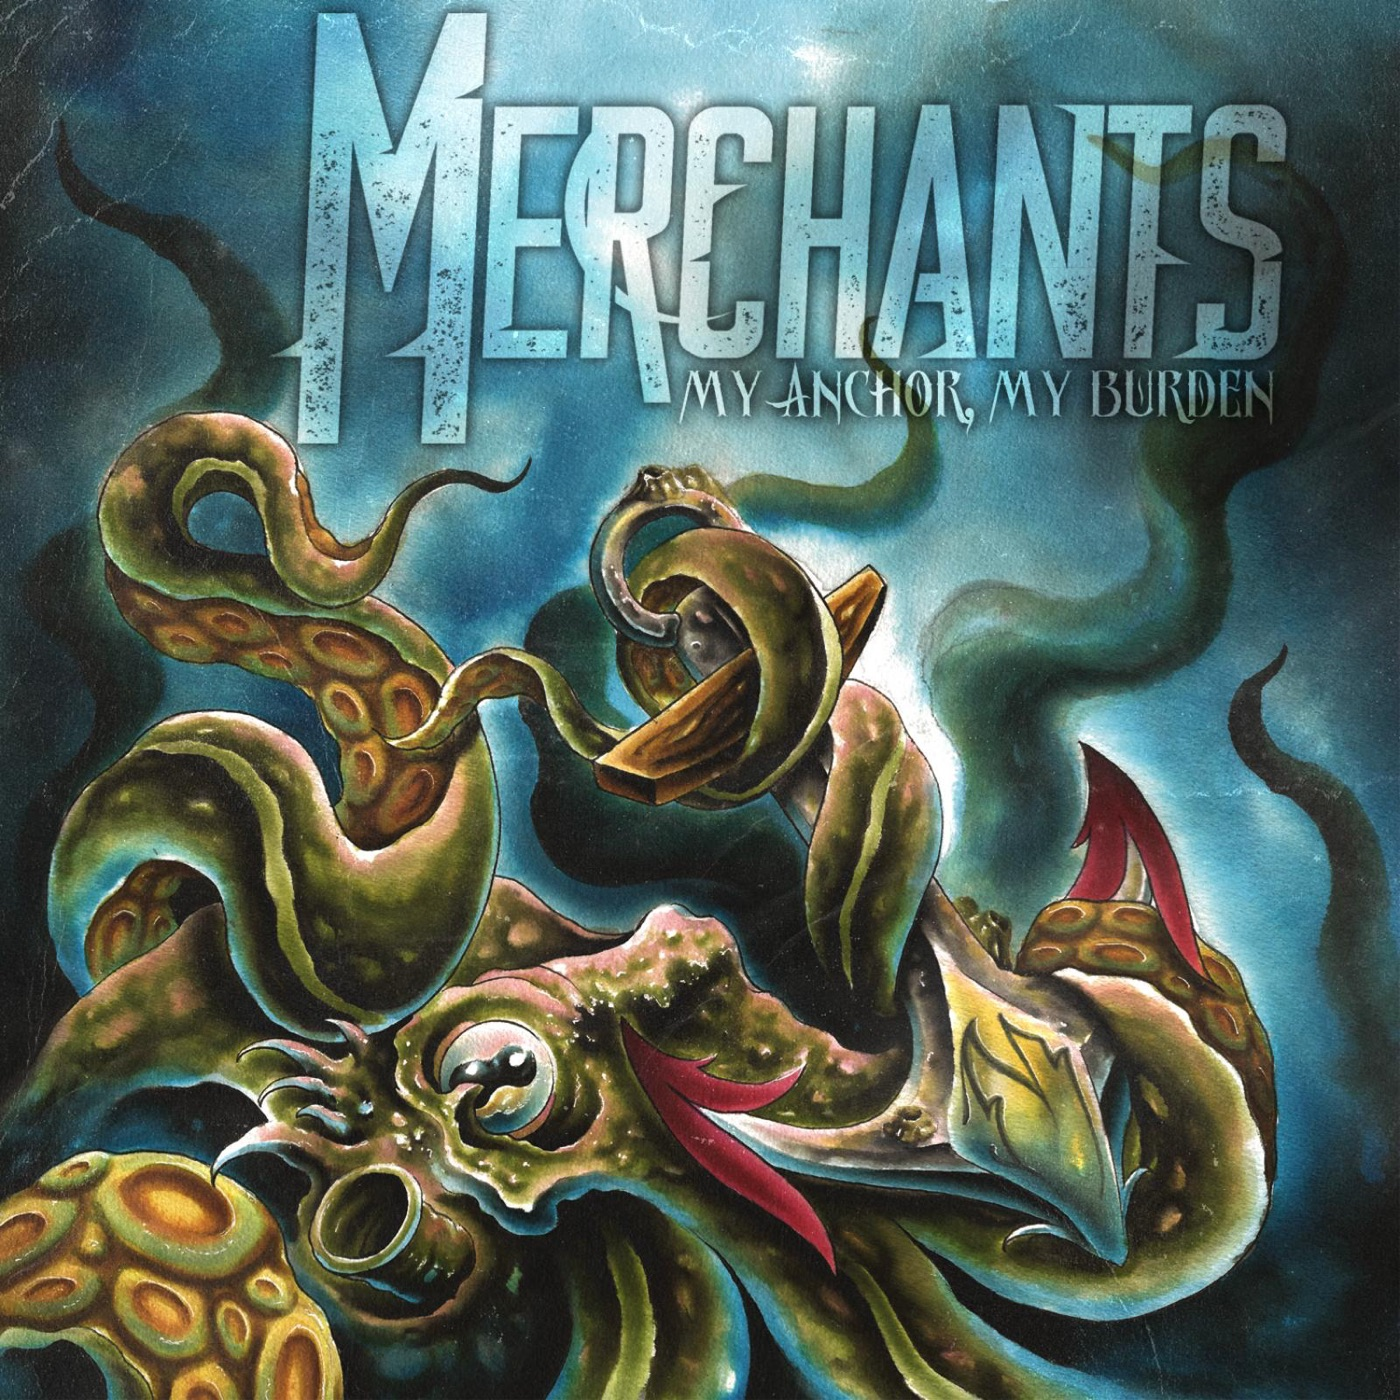 Merchants - My Anchor, My Burden [EP] (2013)